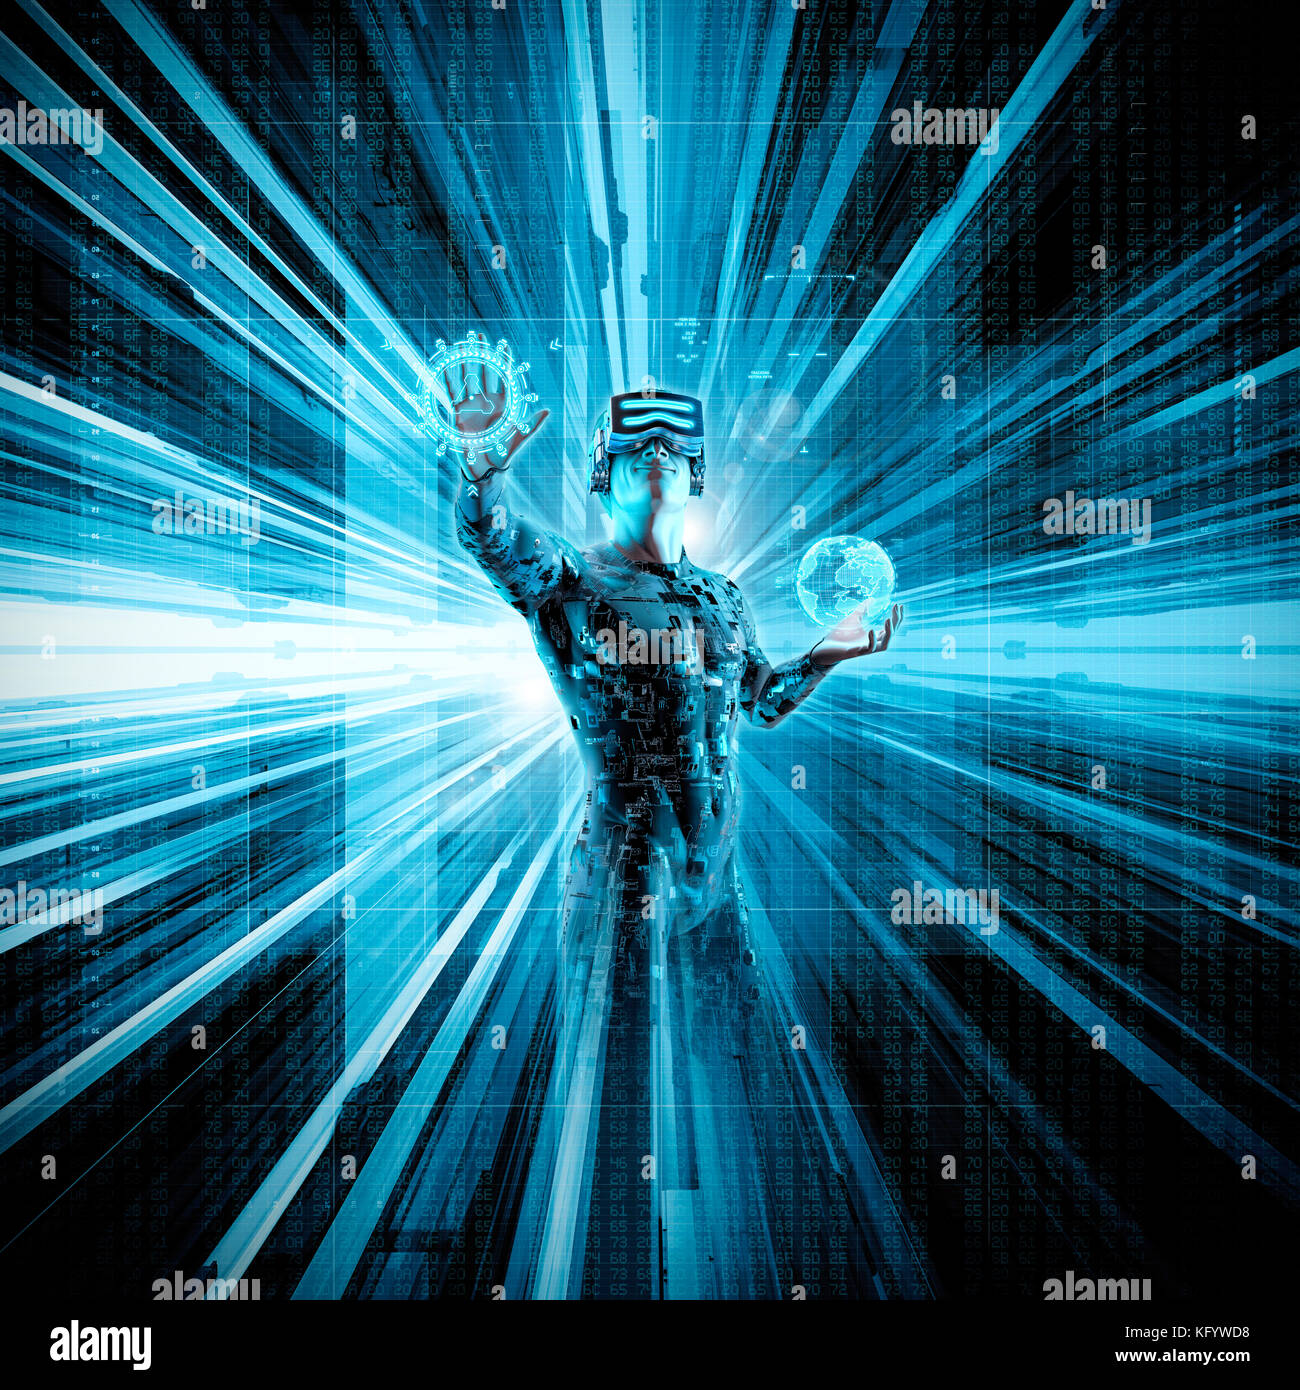 Virtual reality data stream / 3D illustration of male figure in virtual gear working in cyberspace - Stock Image